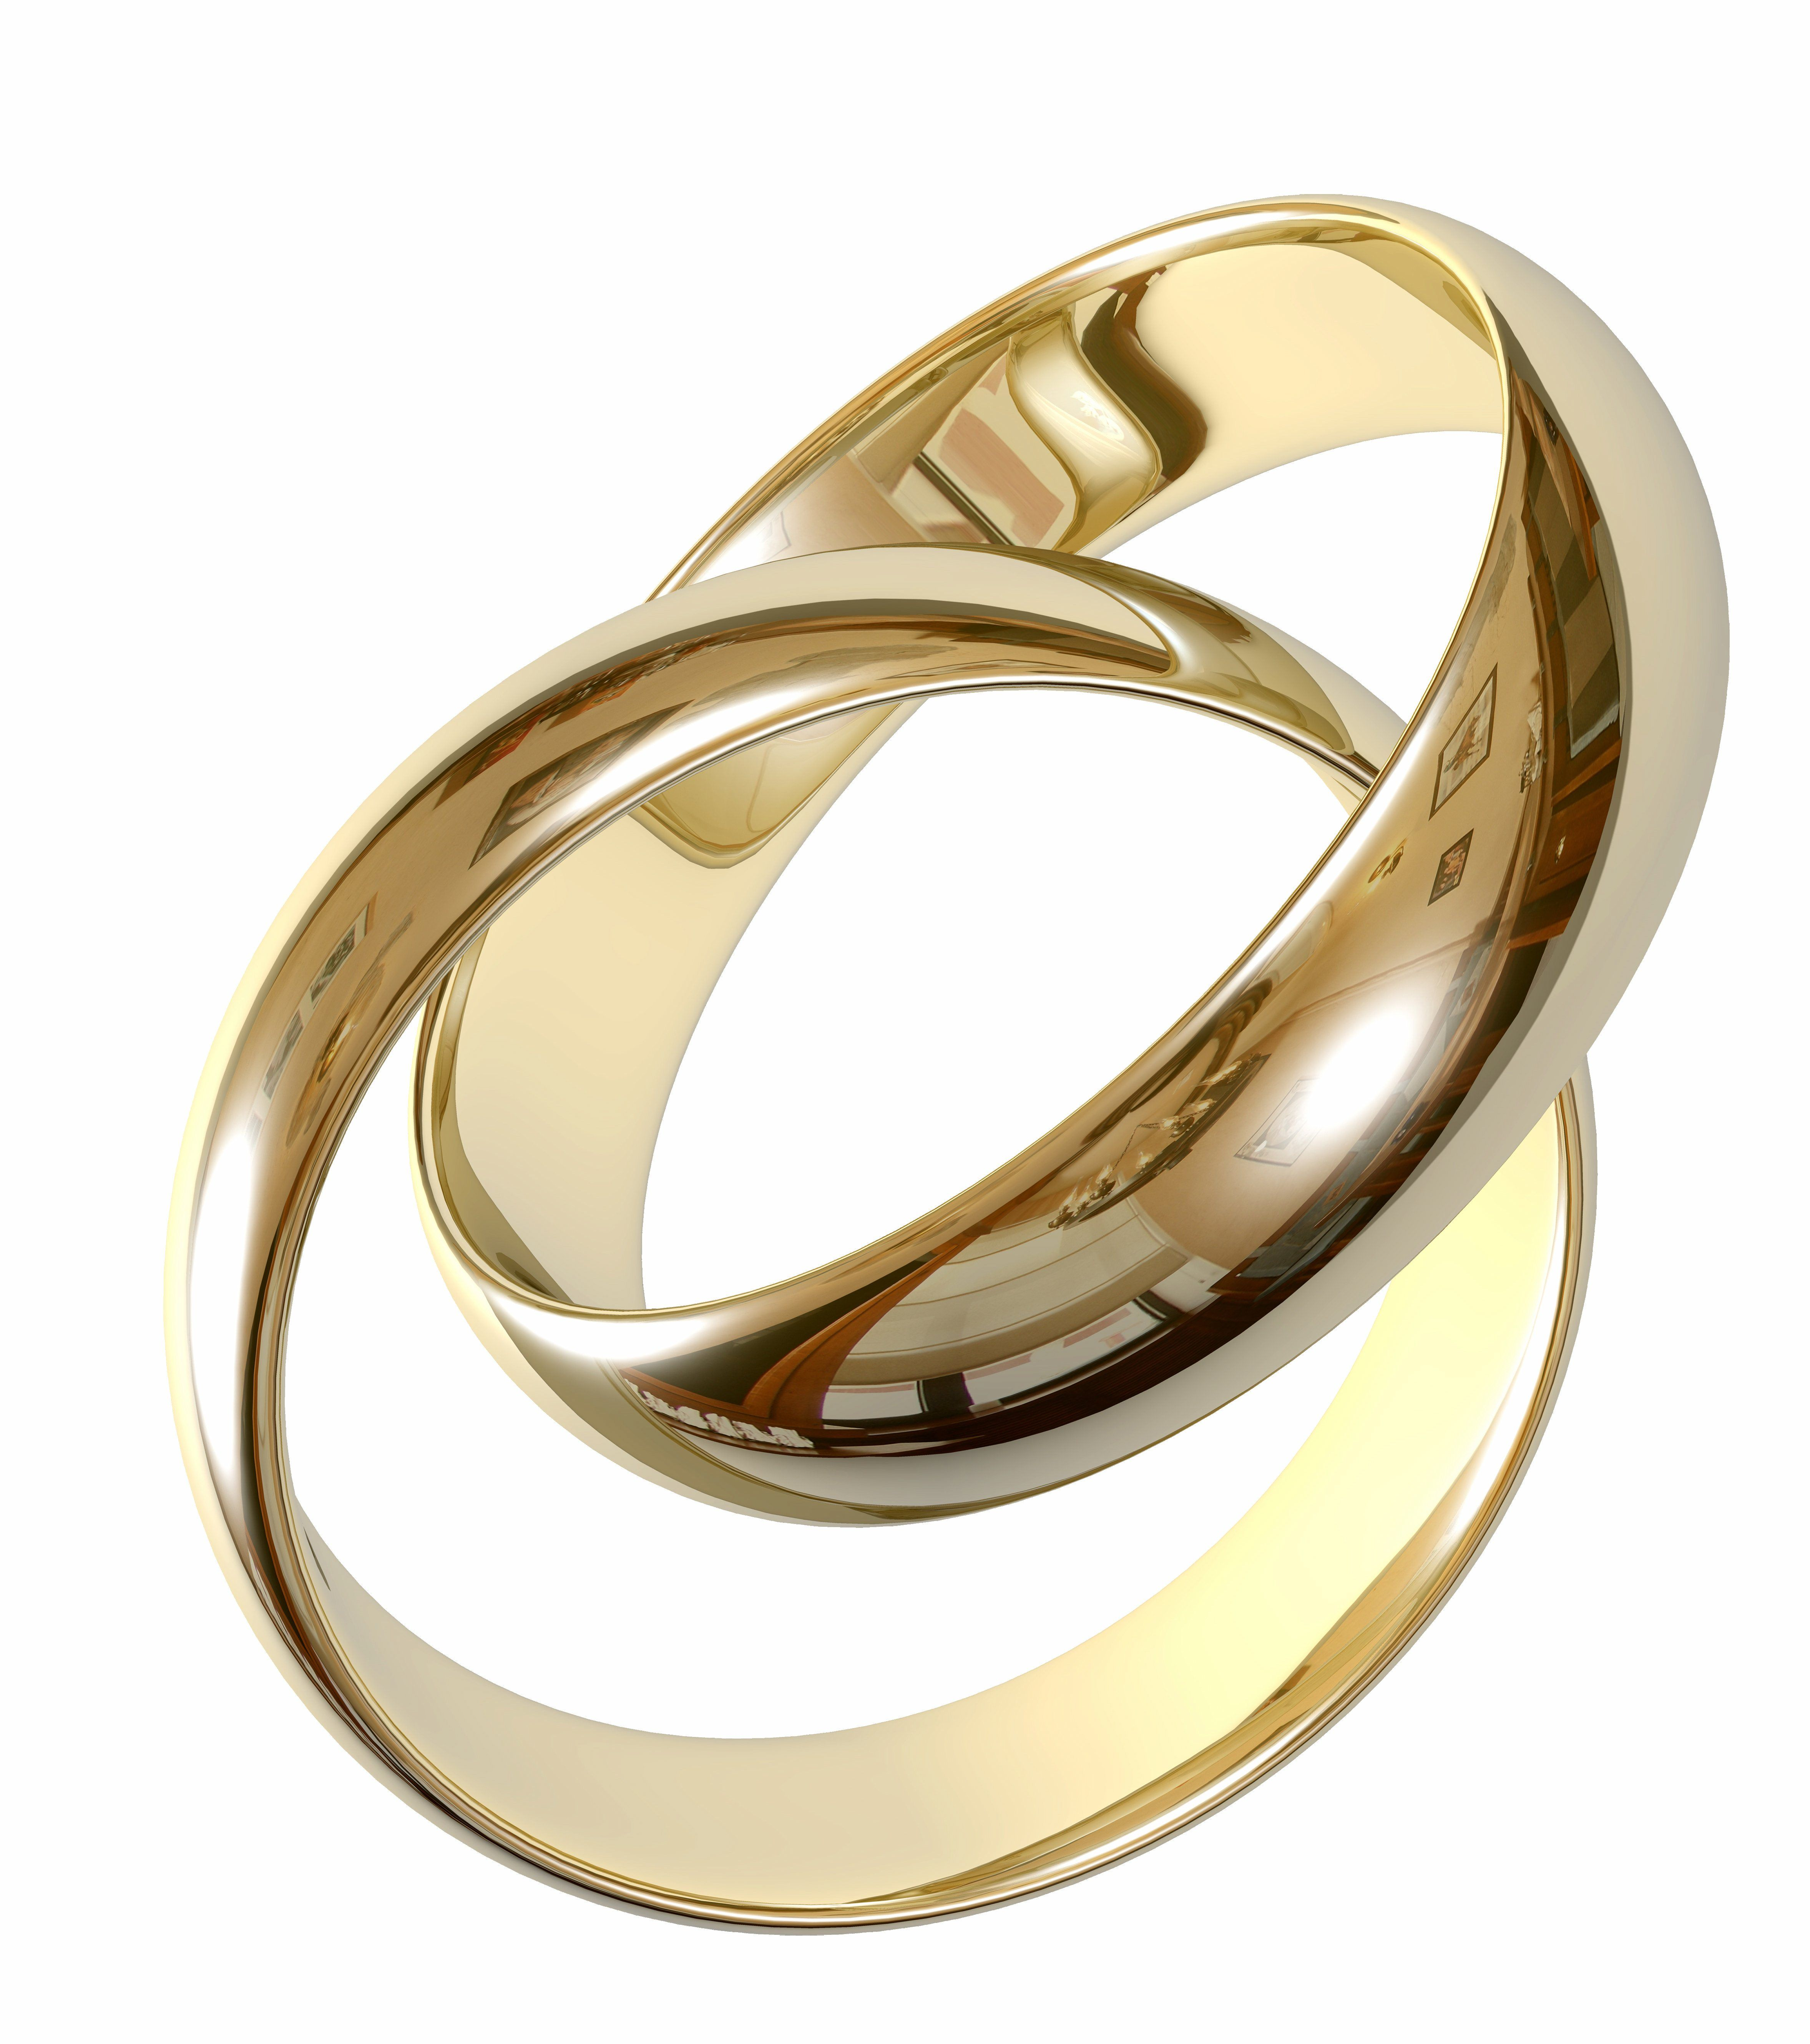 Wedding Ring Hd Wallpapers Images Photos And Pics Free Download Wedding Ring Clipart Cute Engagement Rings Modern Wedding Rings